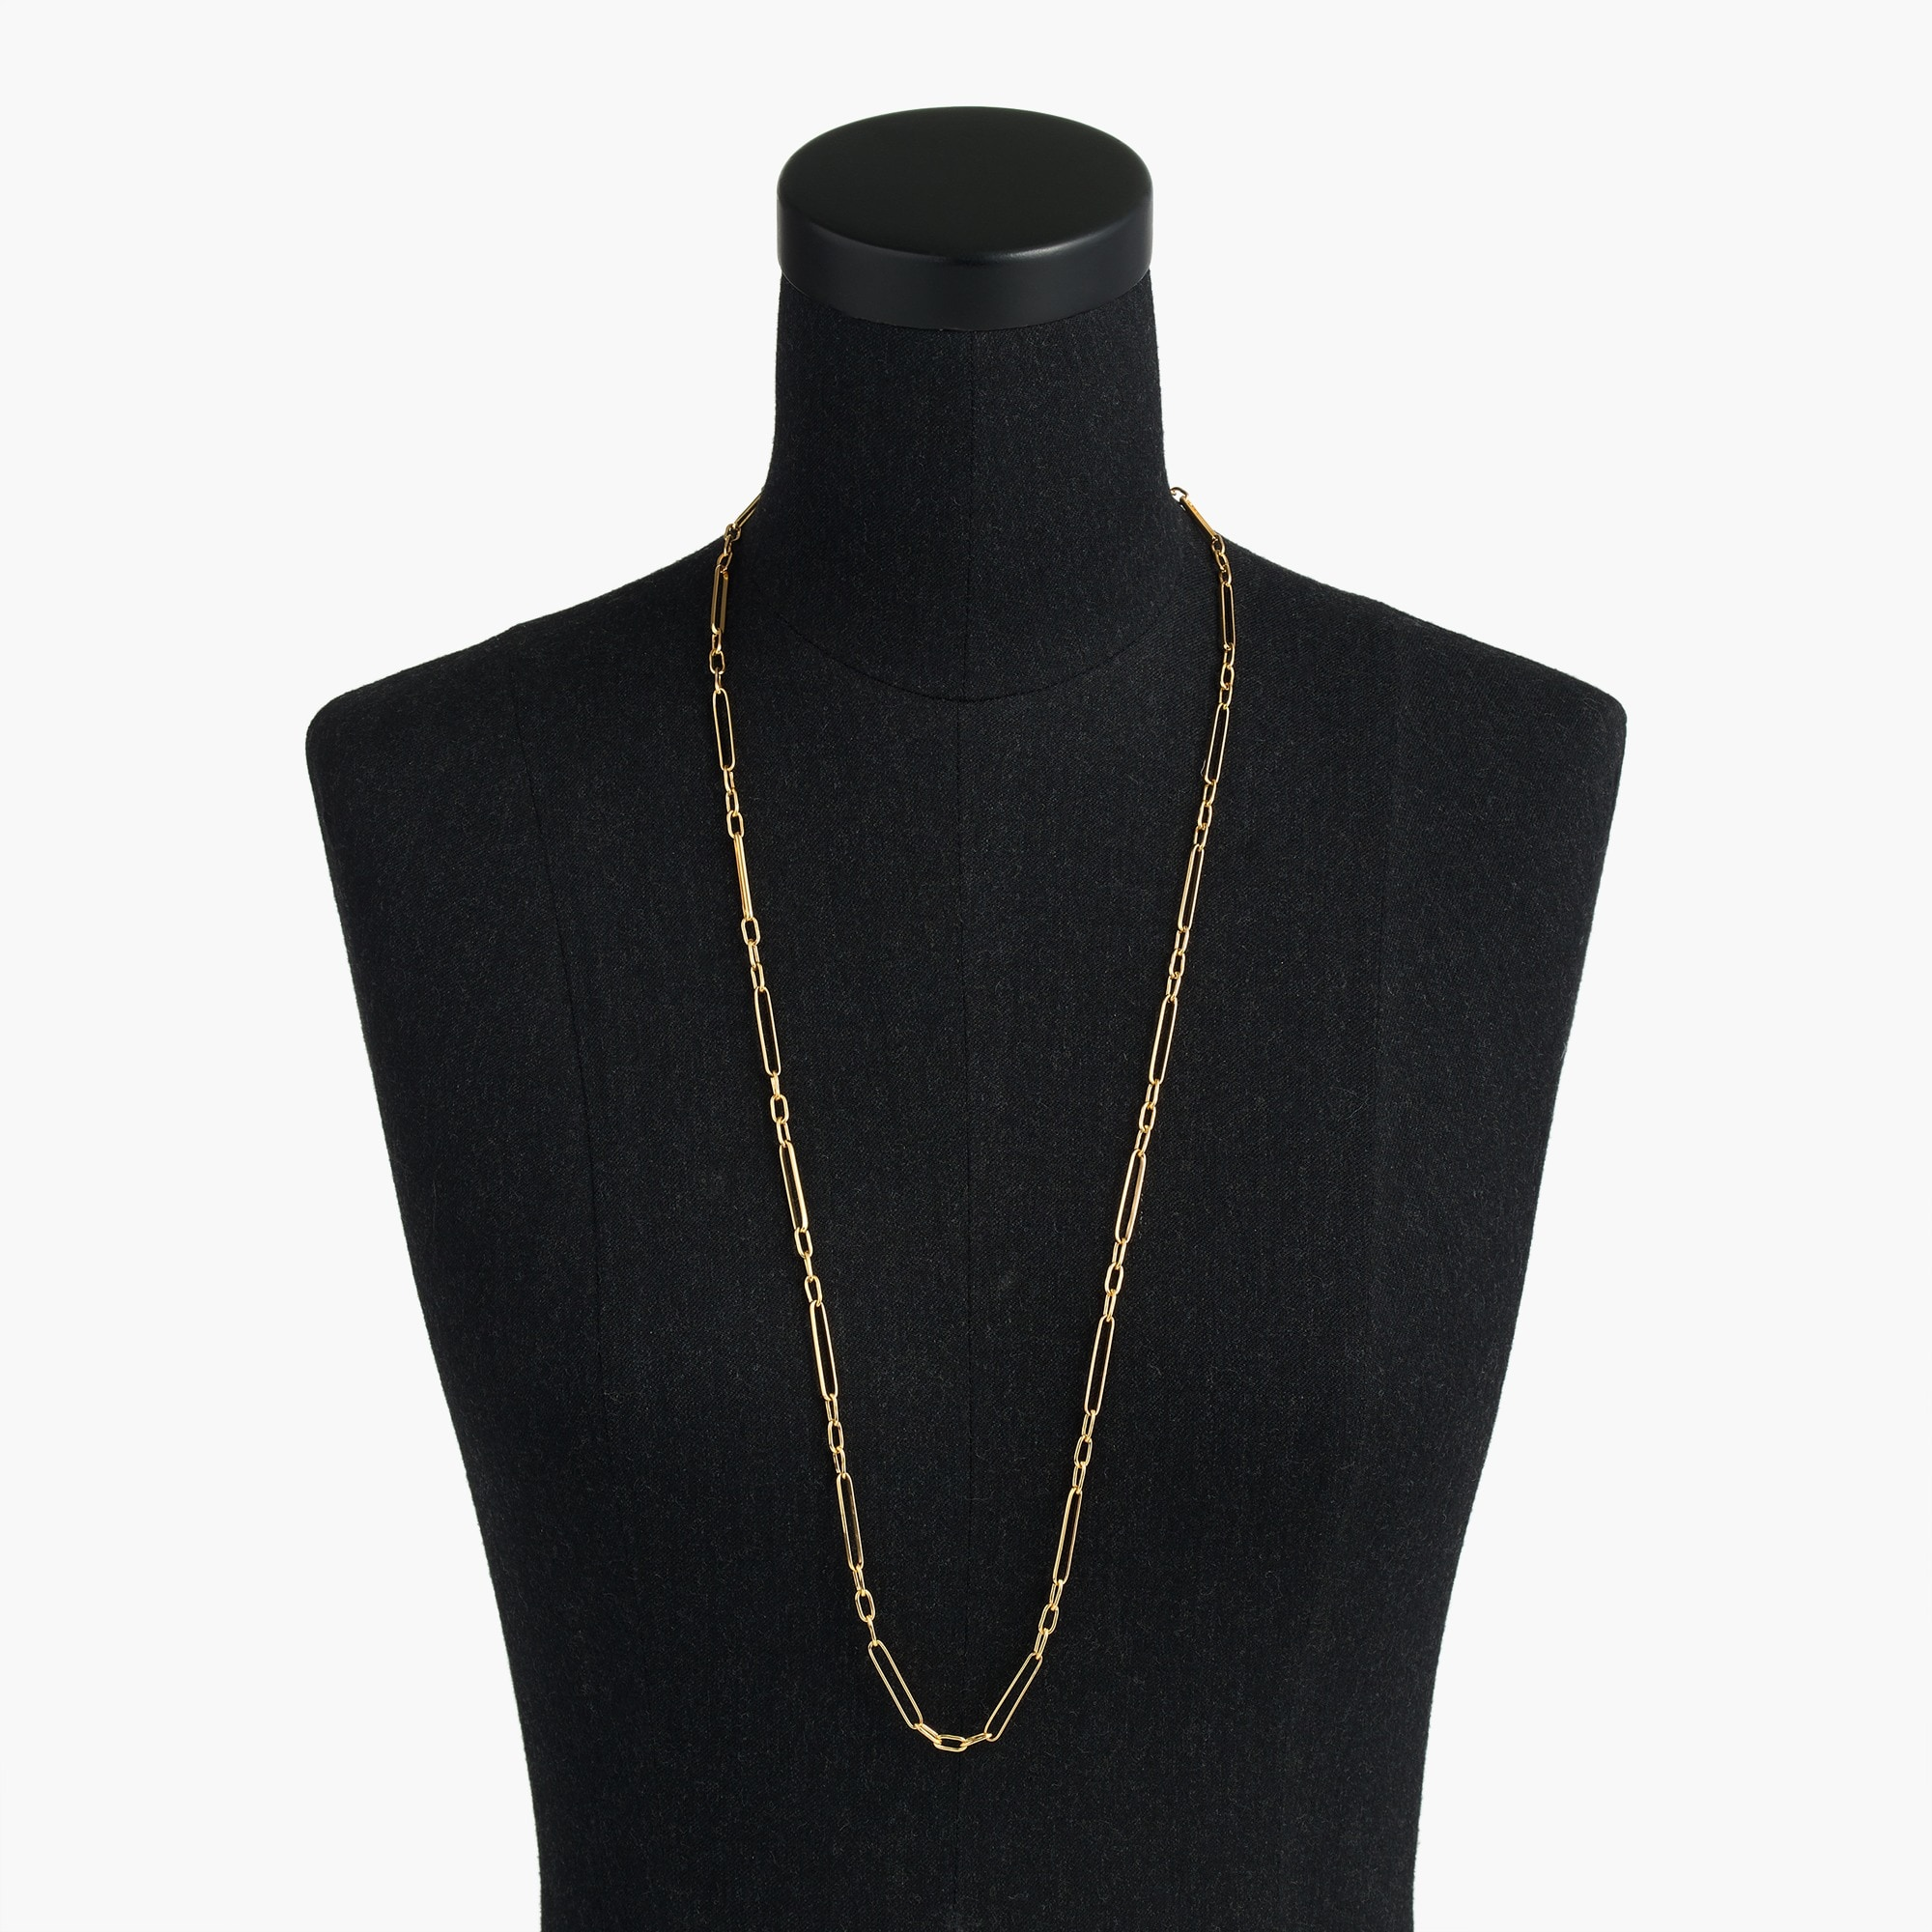 Image 1 for Demi-fine 14k gold-plated long multi-link necklace